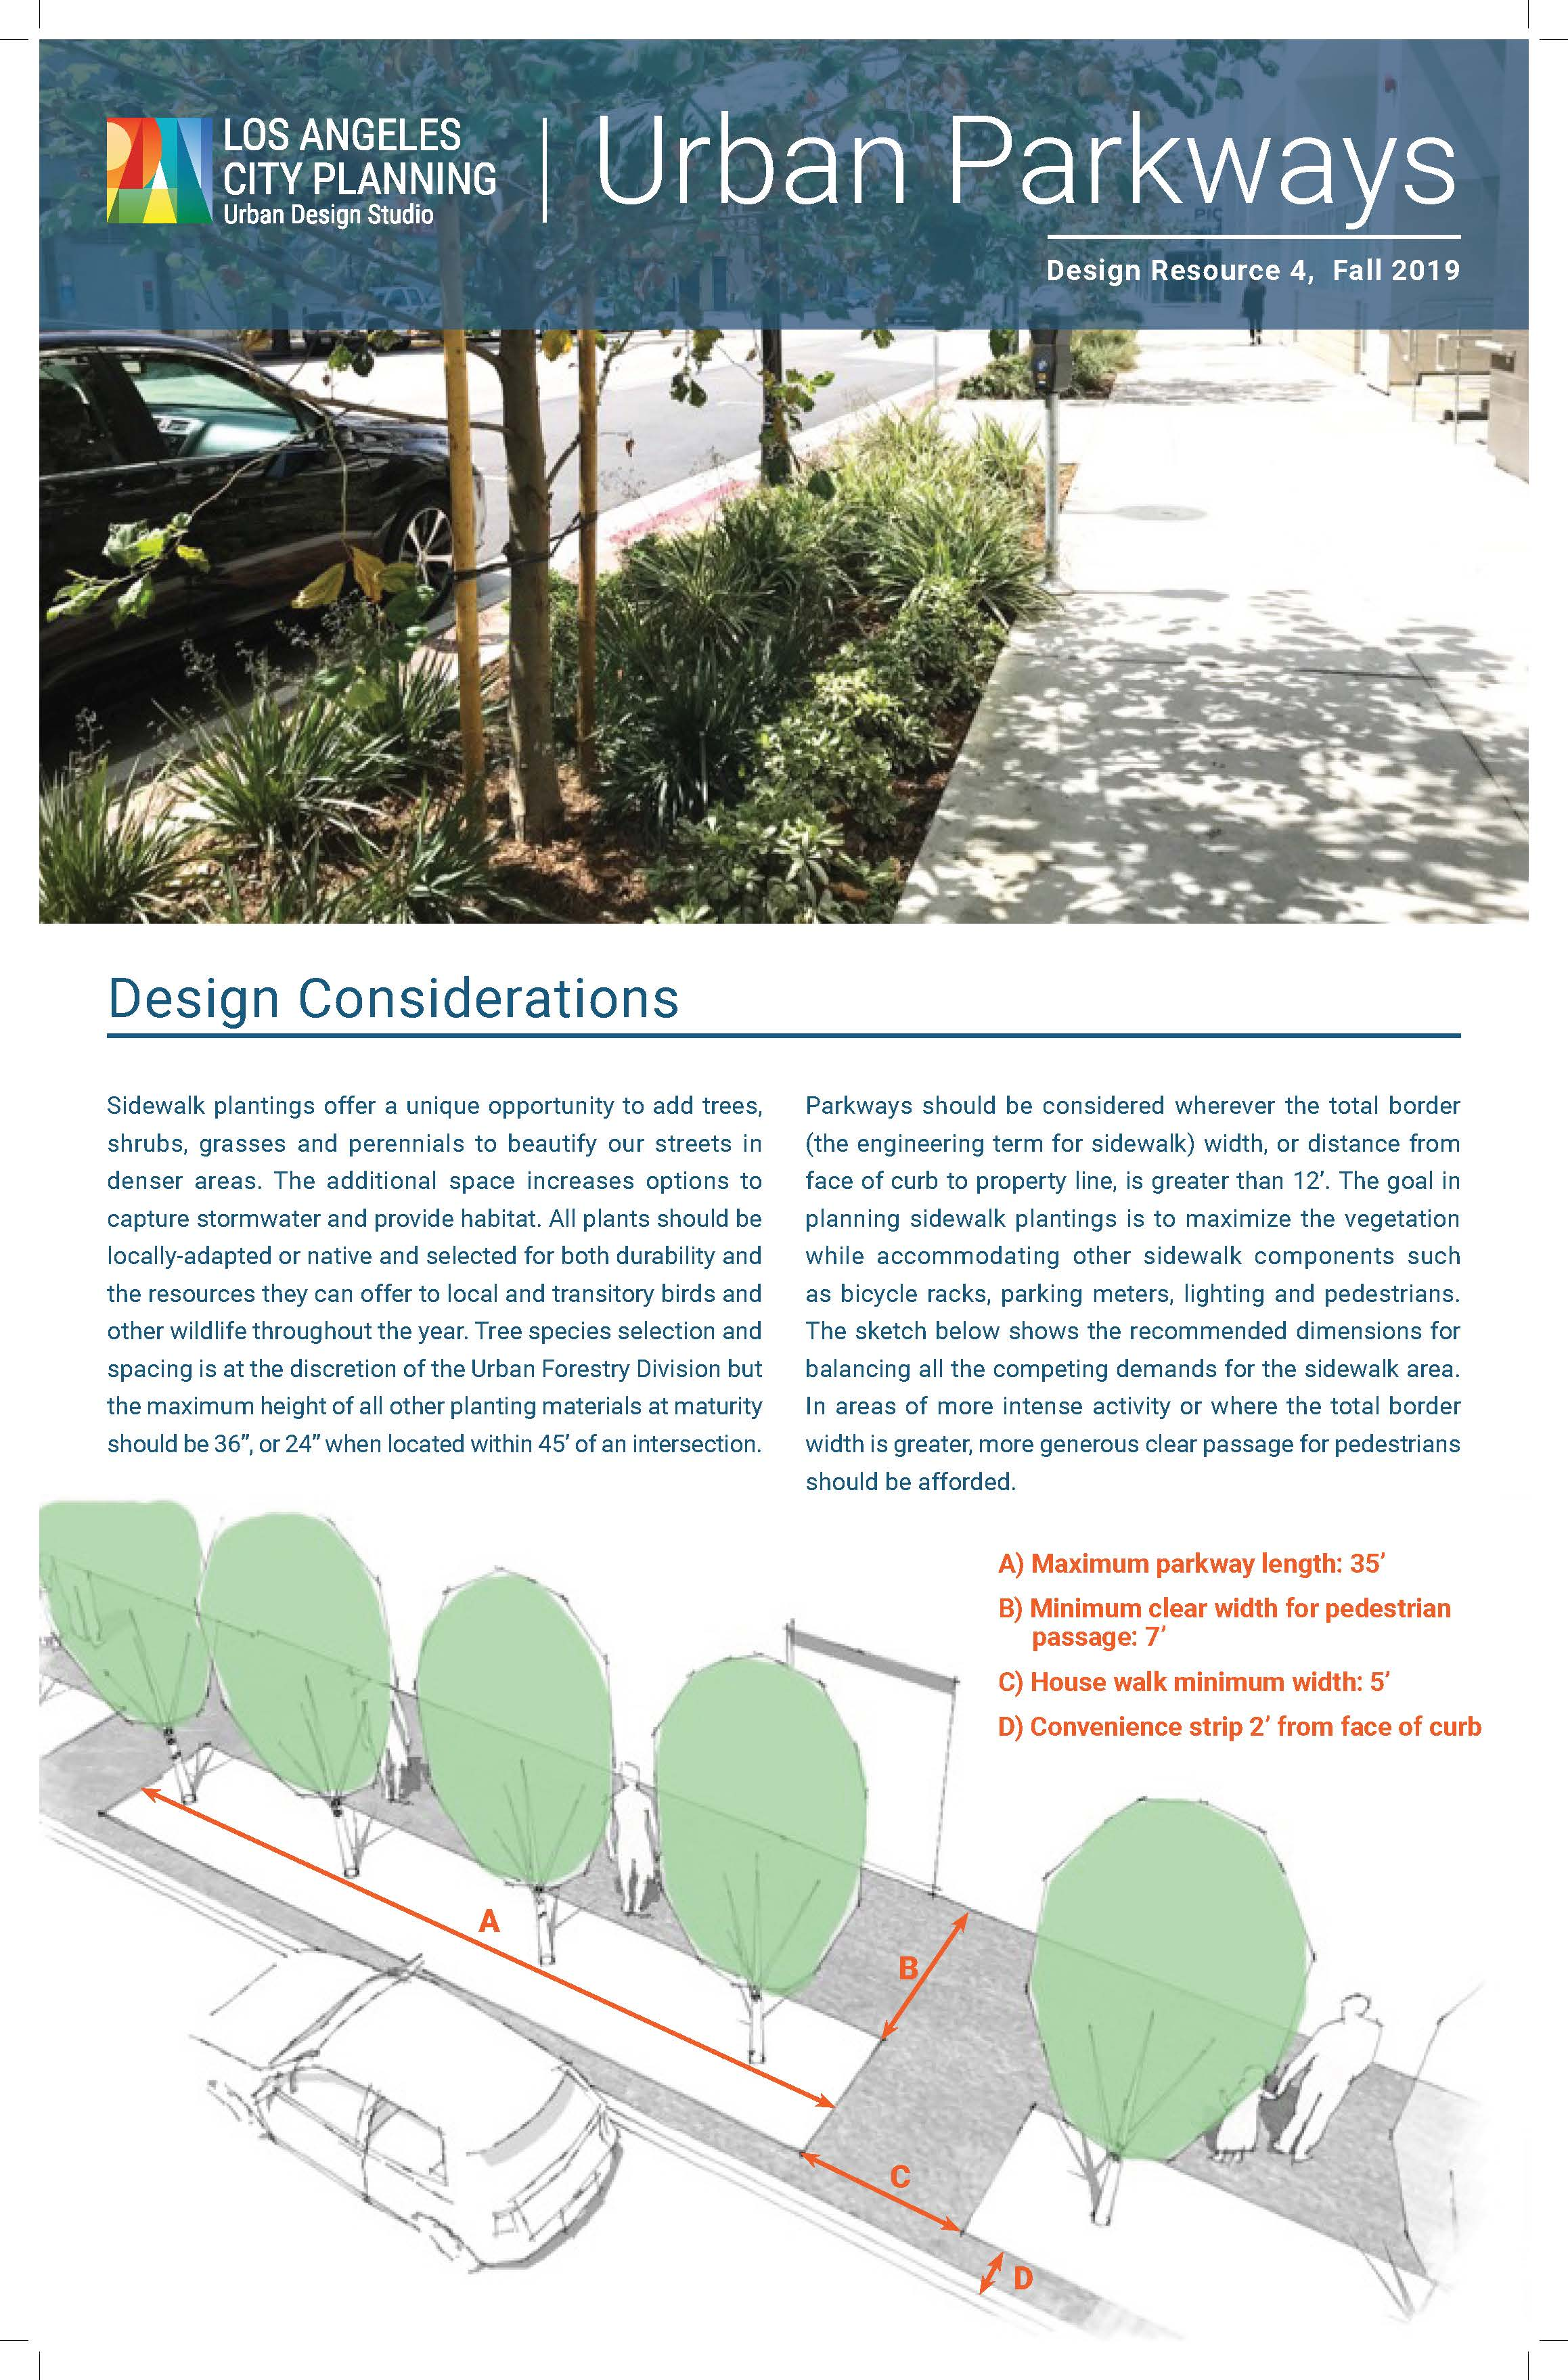 Design Resource 4: Urban Parkways